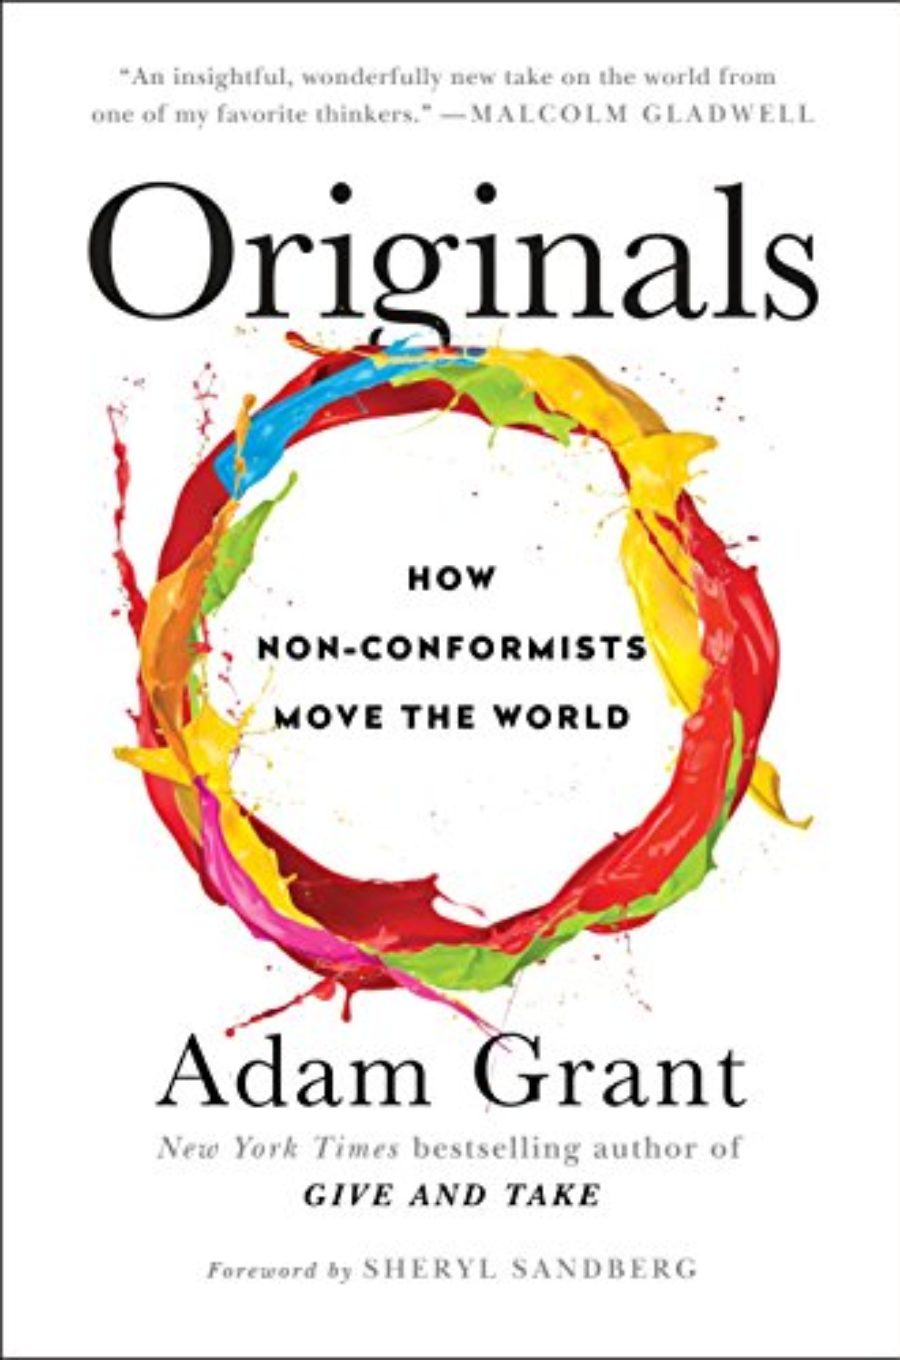 Adam Grant — Successful Givers, Toxic Takers, and the Life